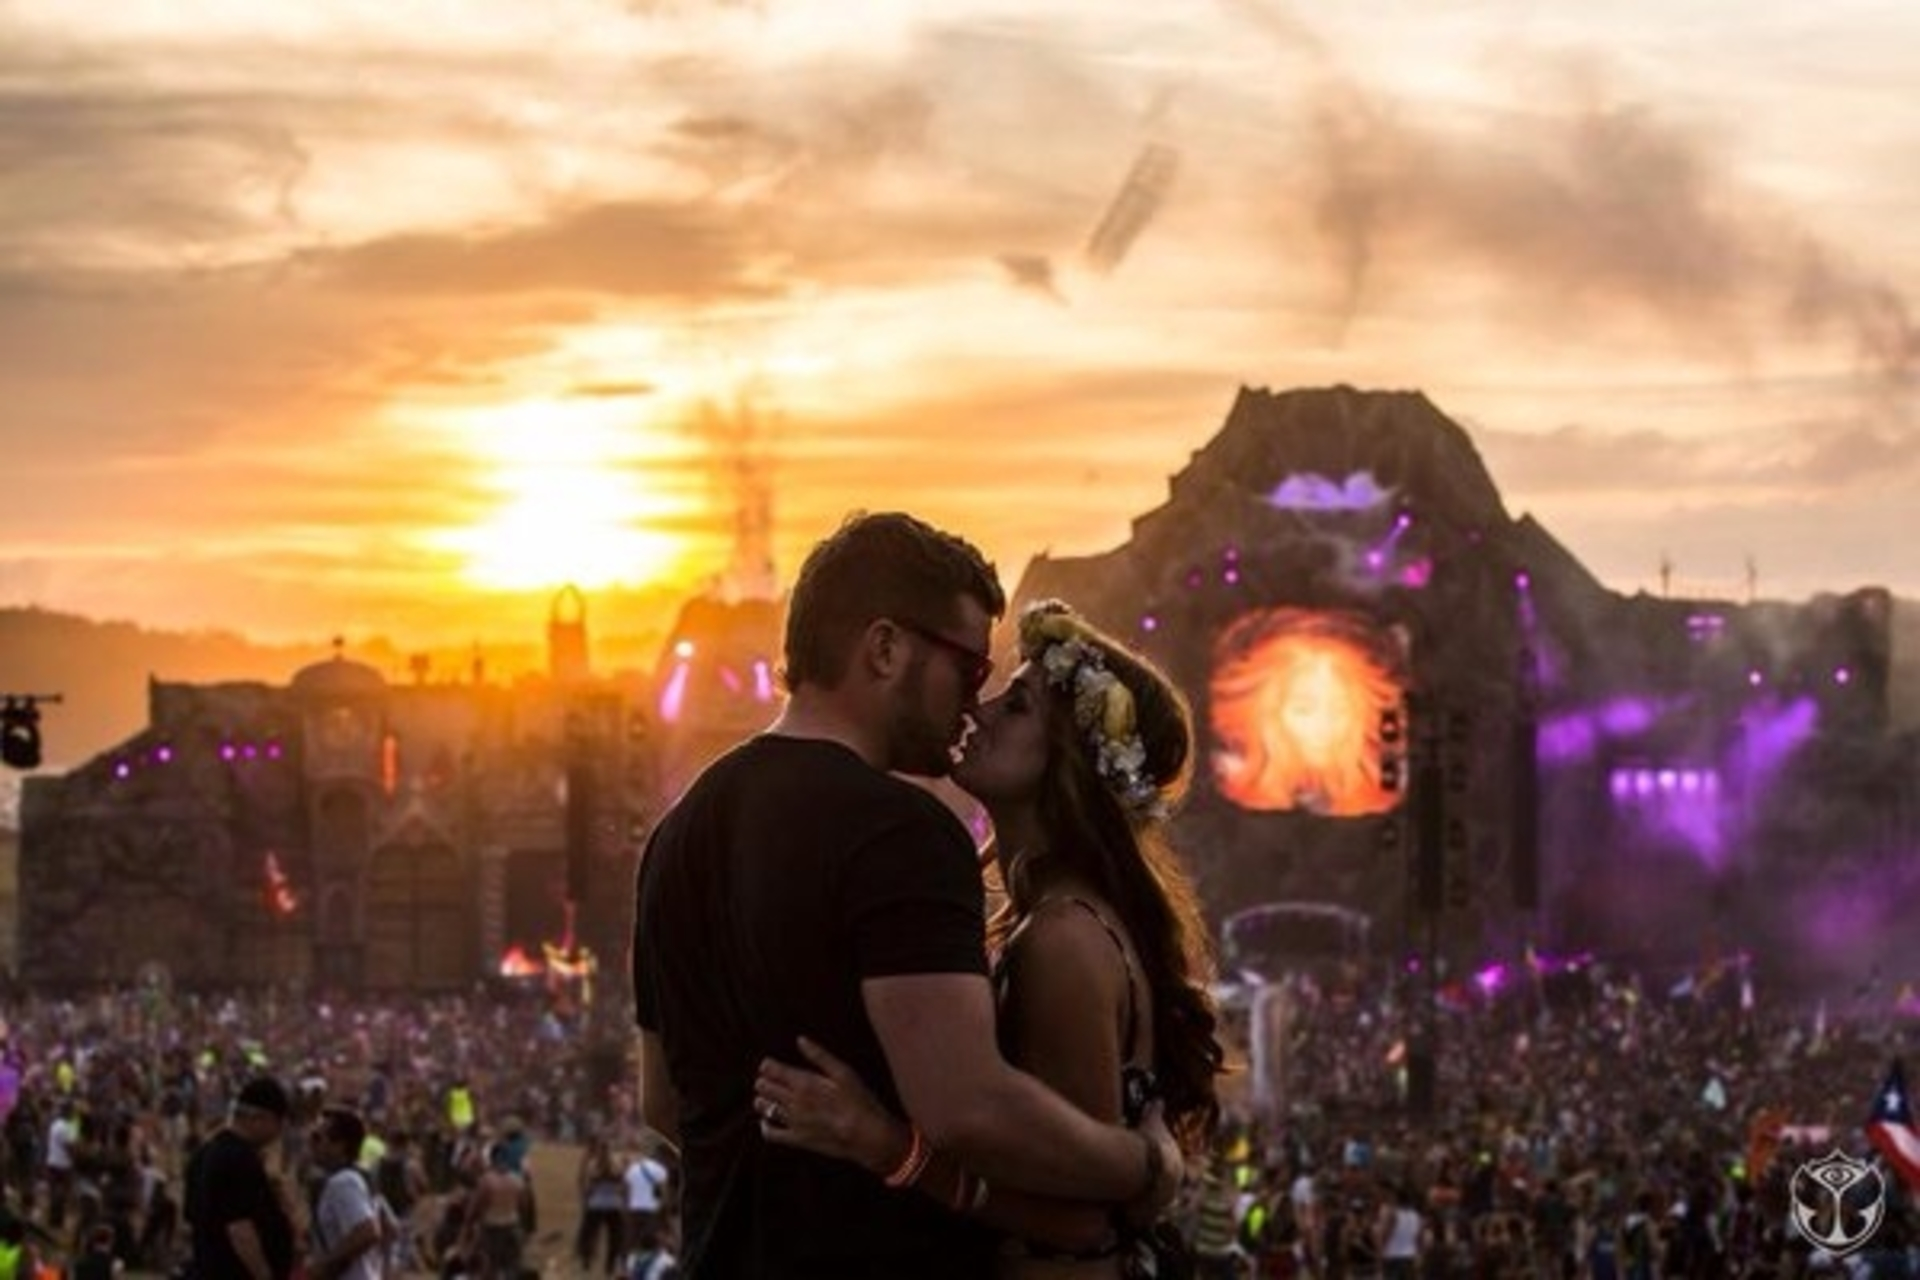 two people kissing at a festival